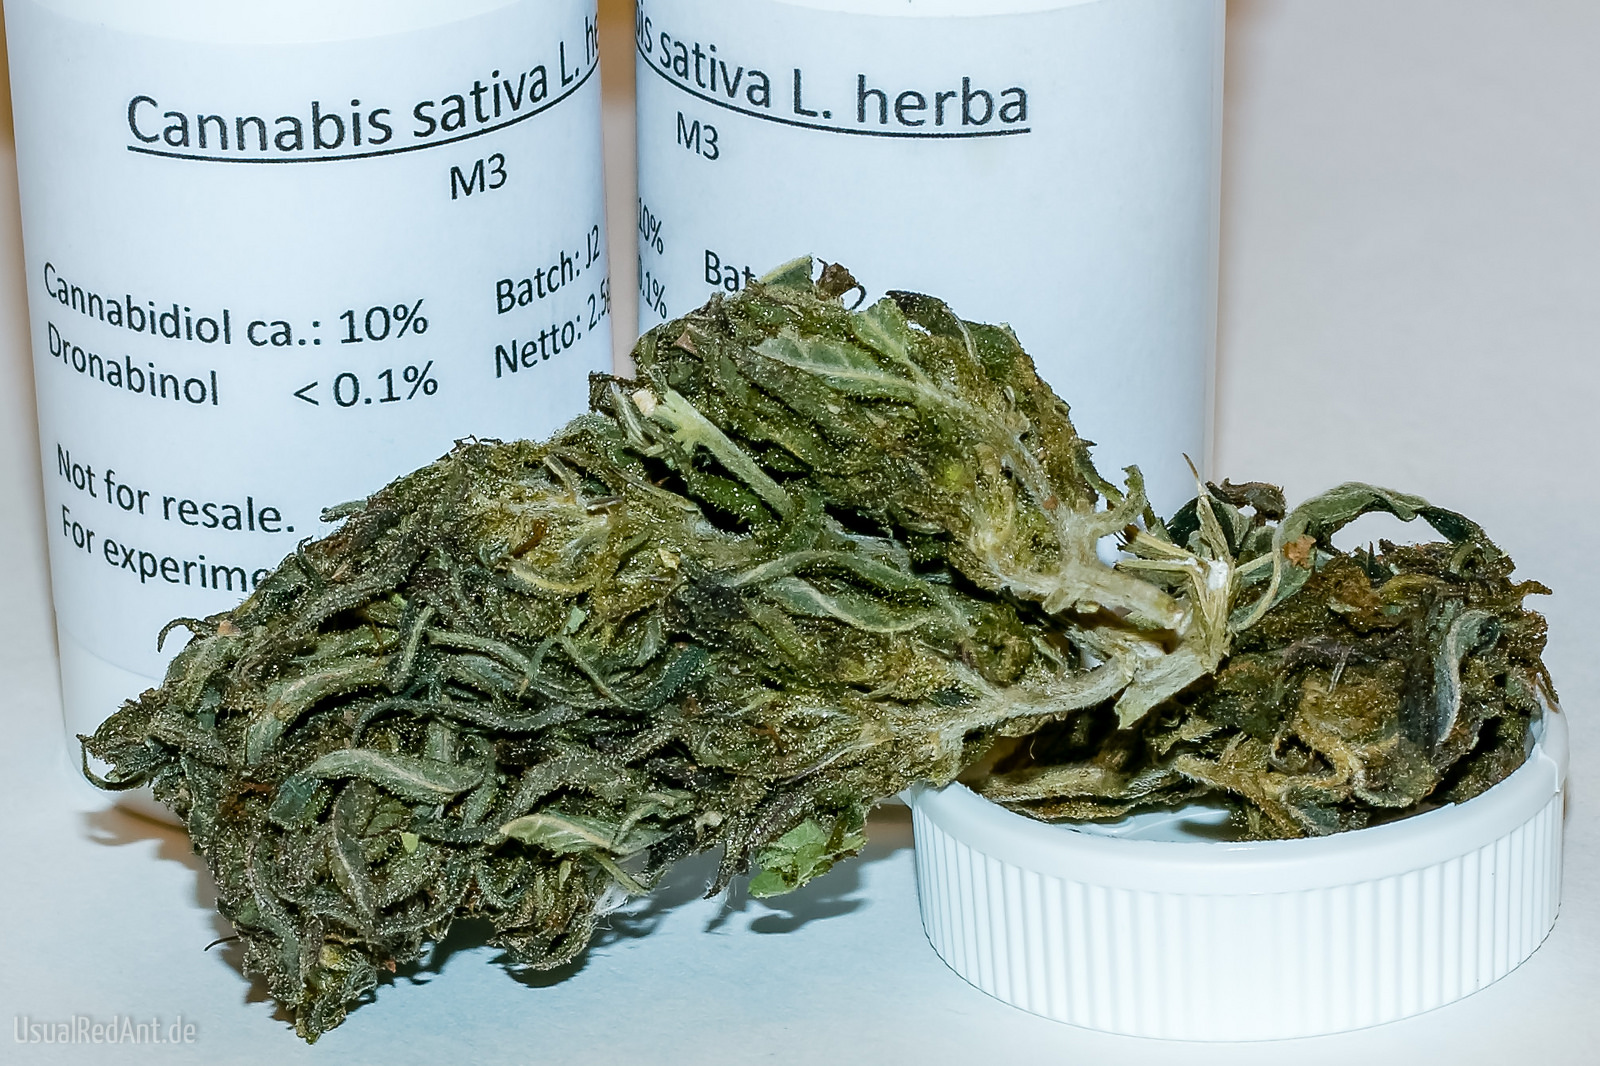 cbd-cannabis-terapeutica-uk-farmaco